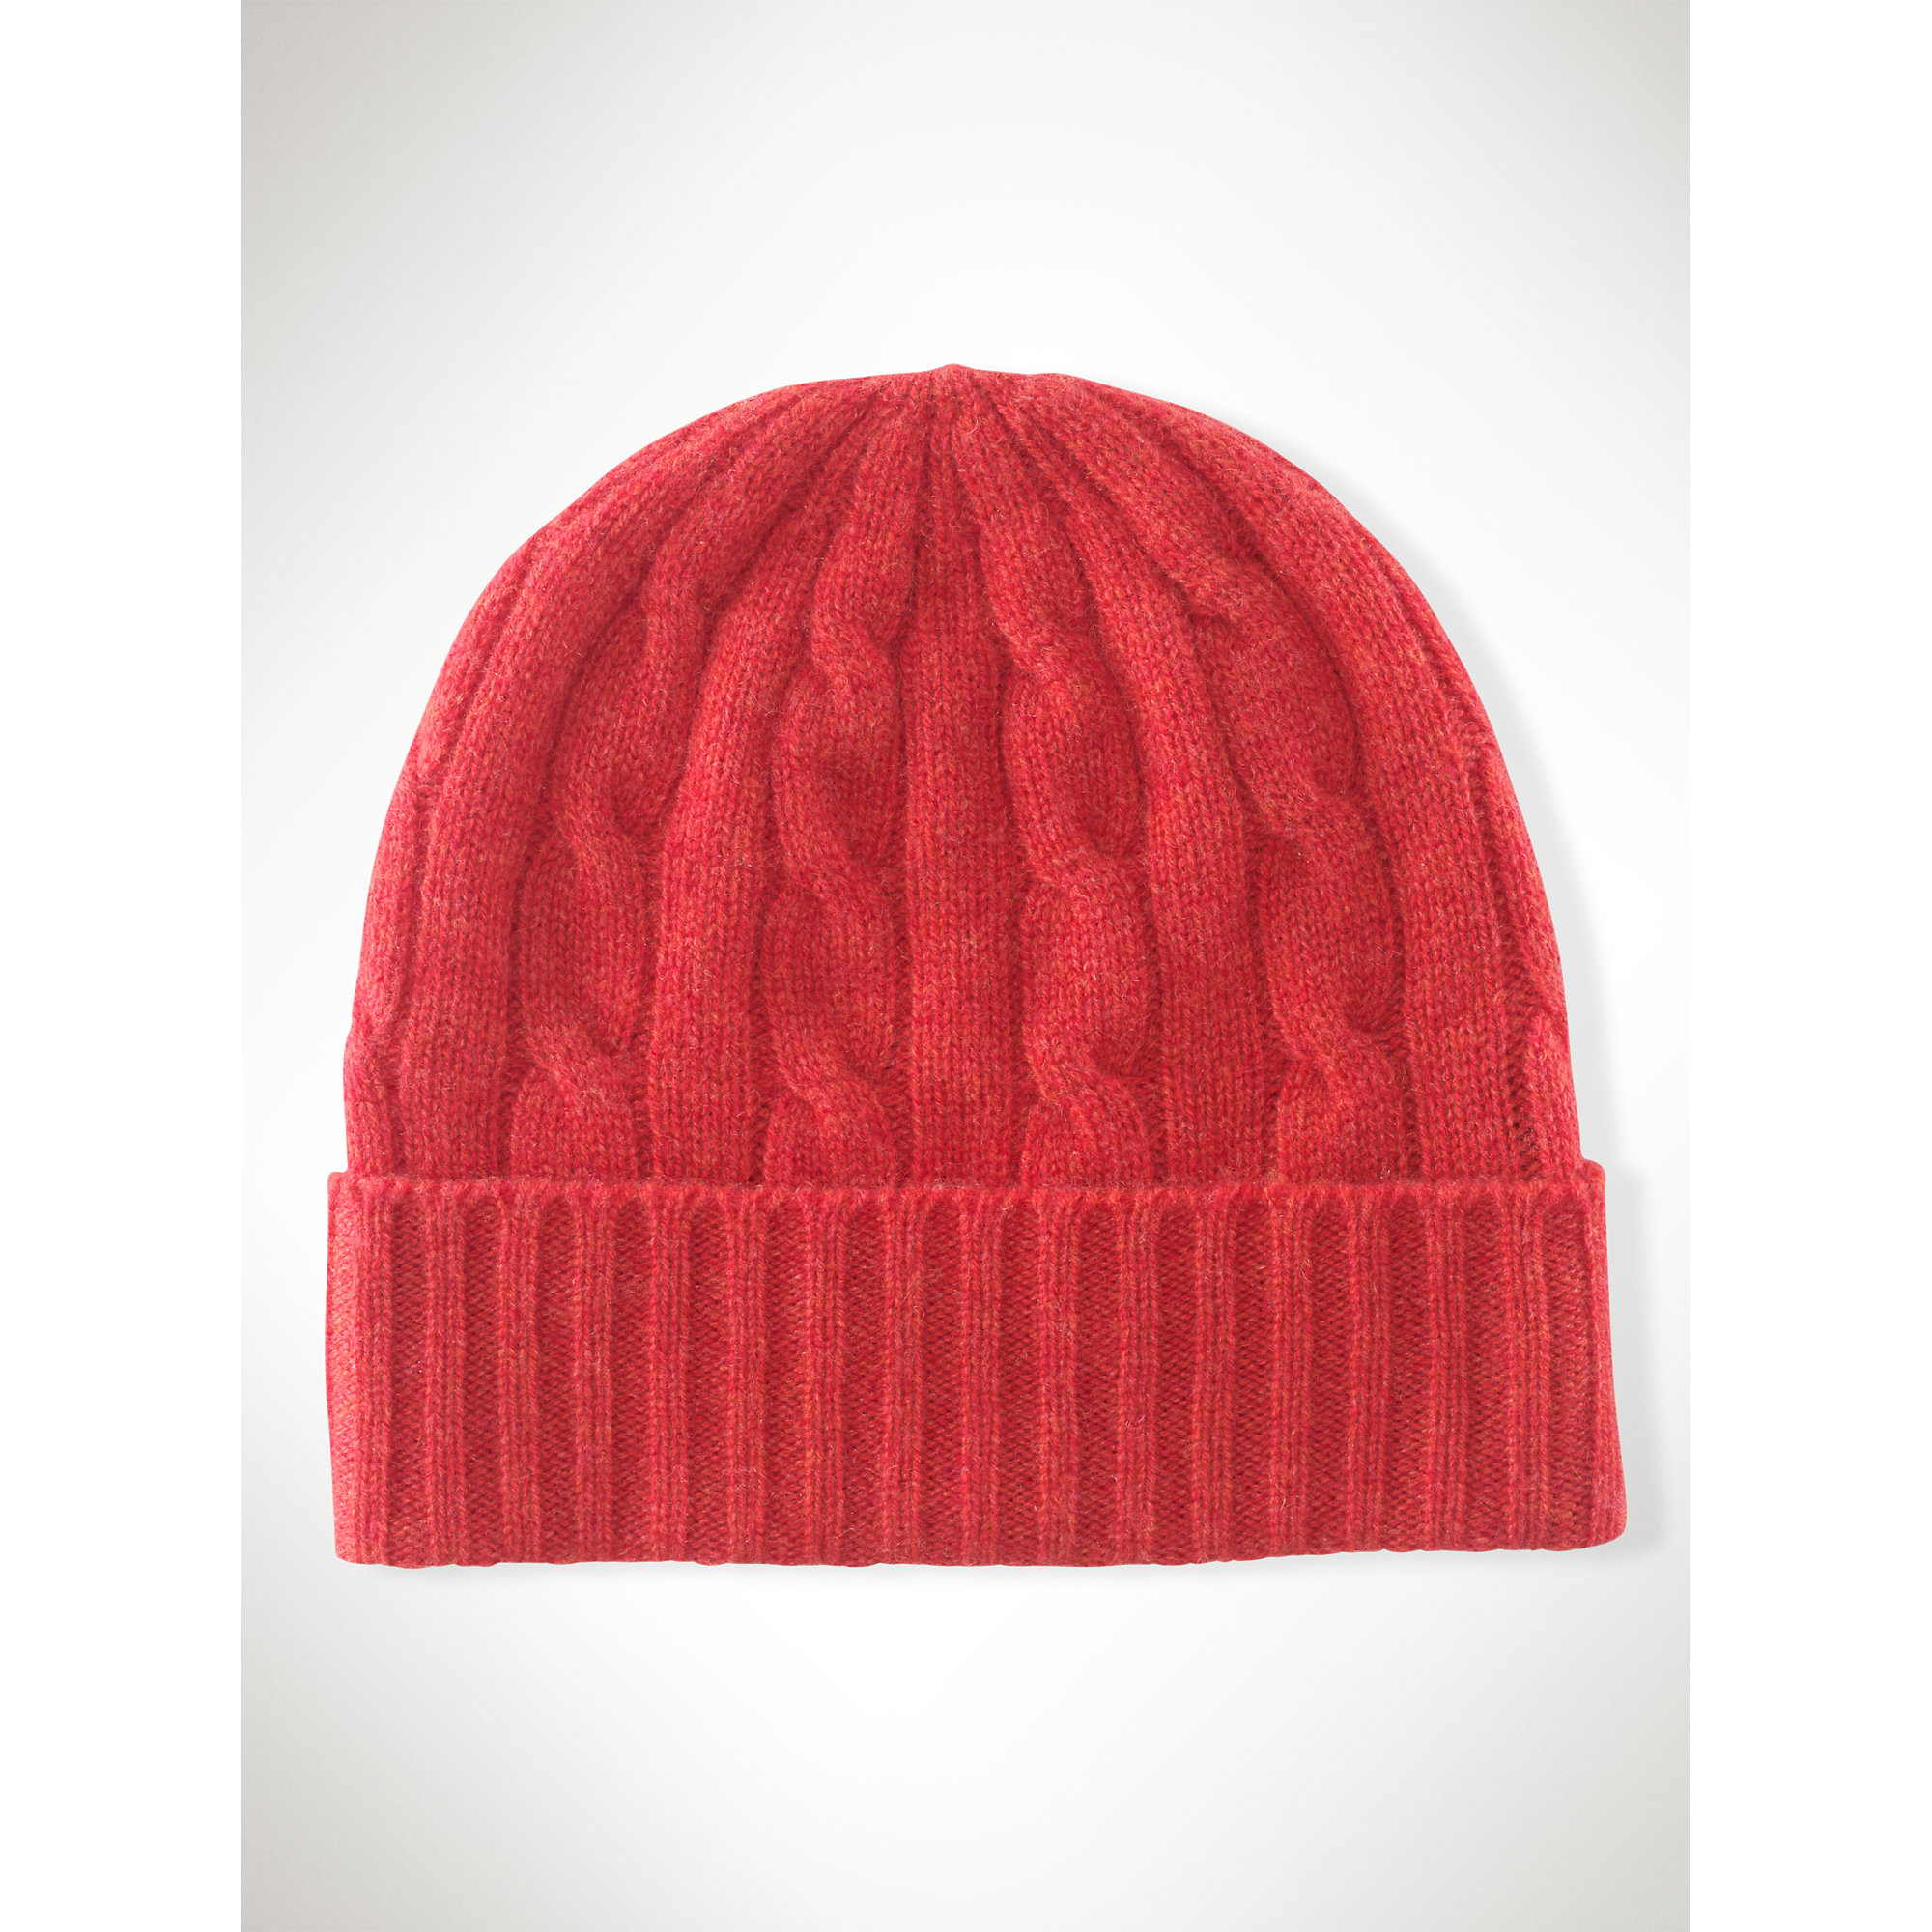 Lyst - Polo Ralph Lauren Cable-knit Cashmere Hat in Red cc0d388c8ec